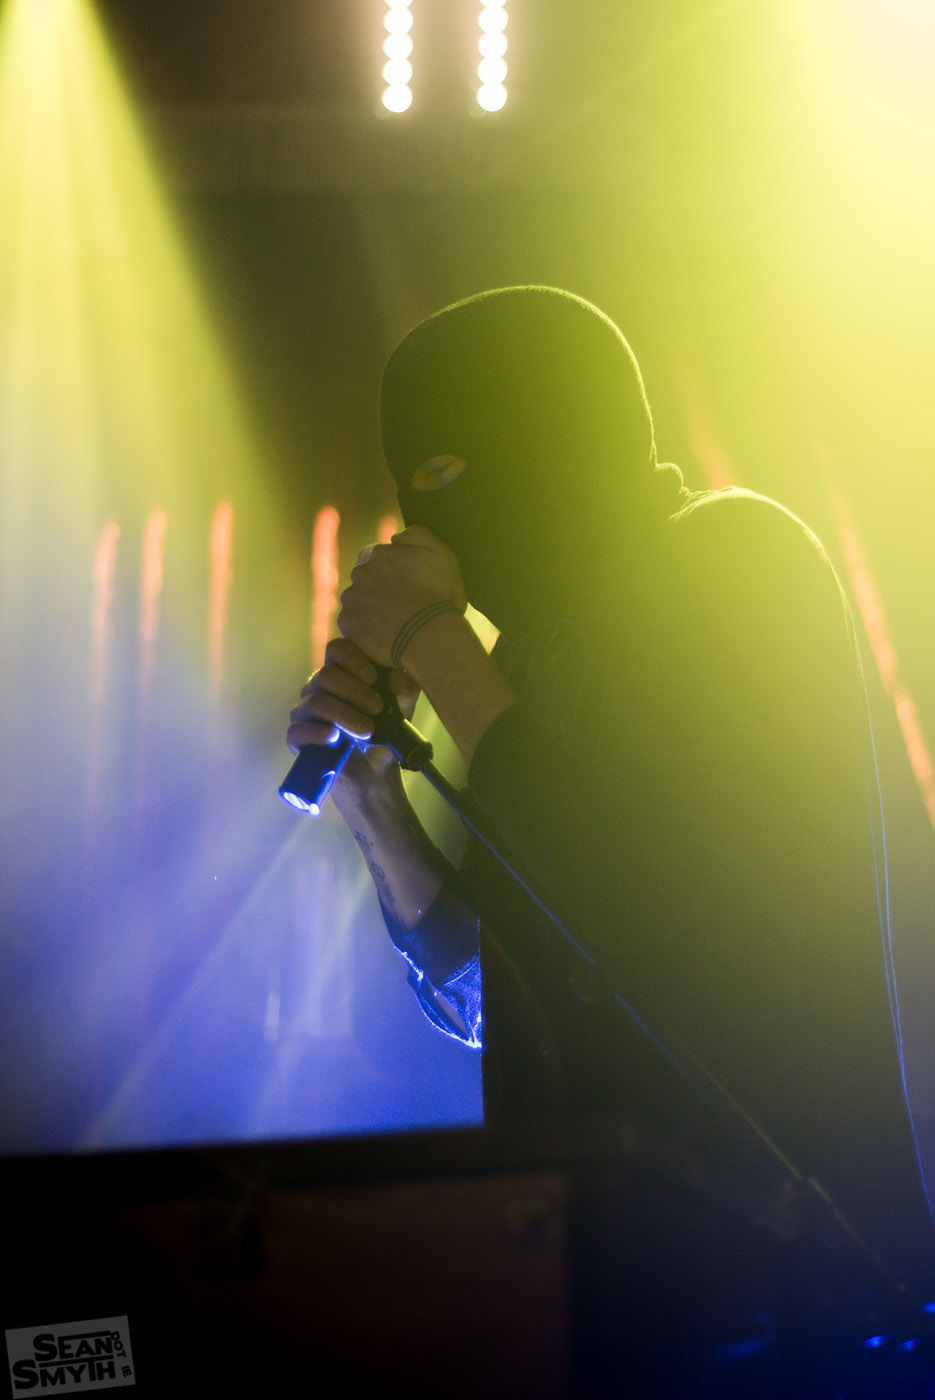 twenty-one-pilots-at-the-academy-by-sean-smyth-16-11-14-24-of-41_15808388132_o